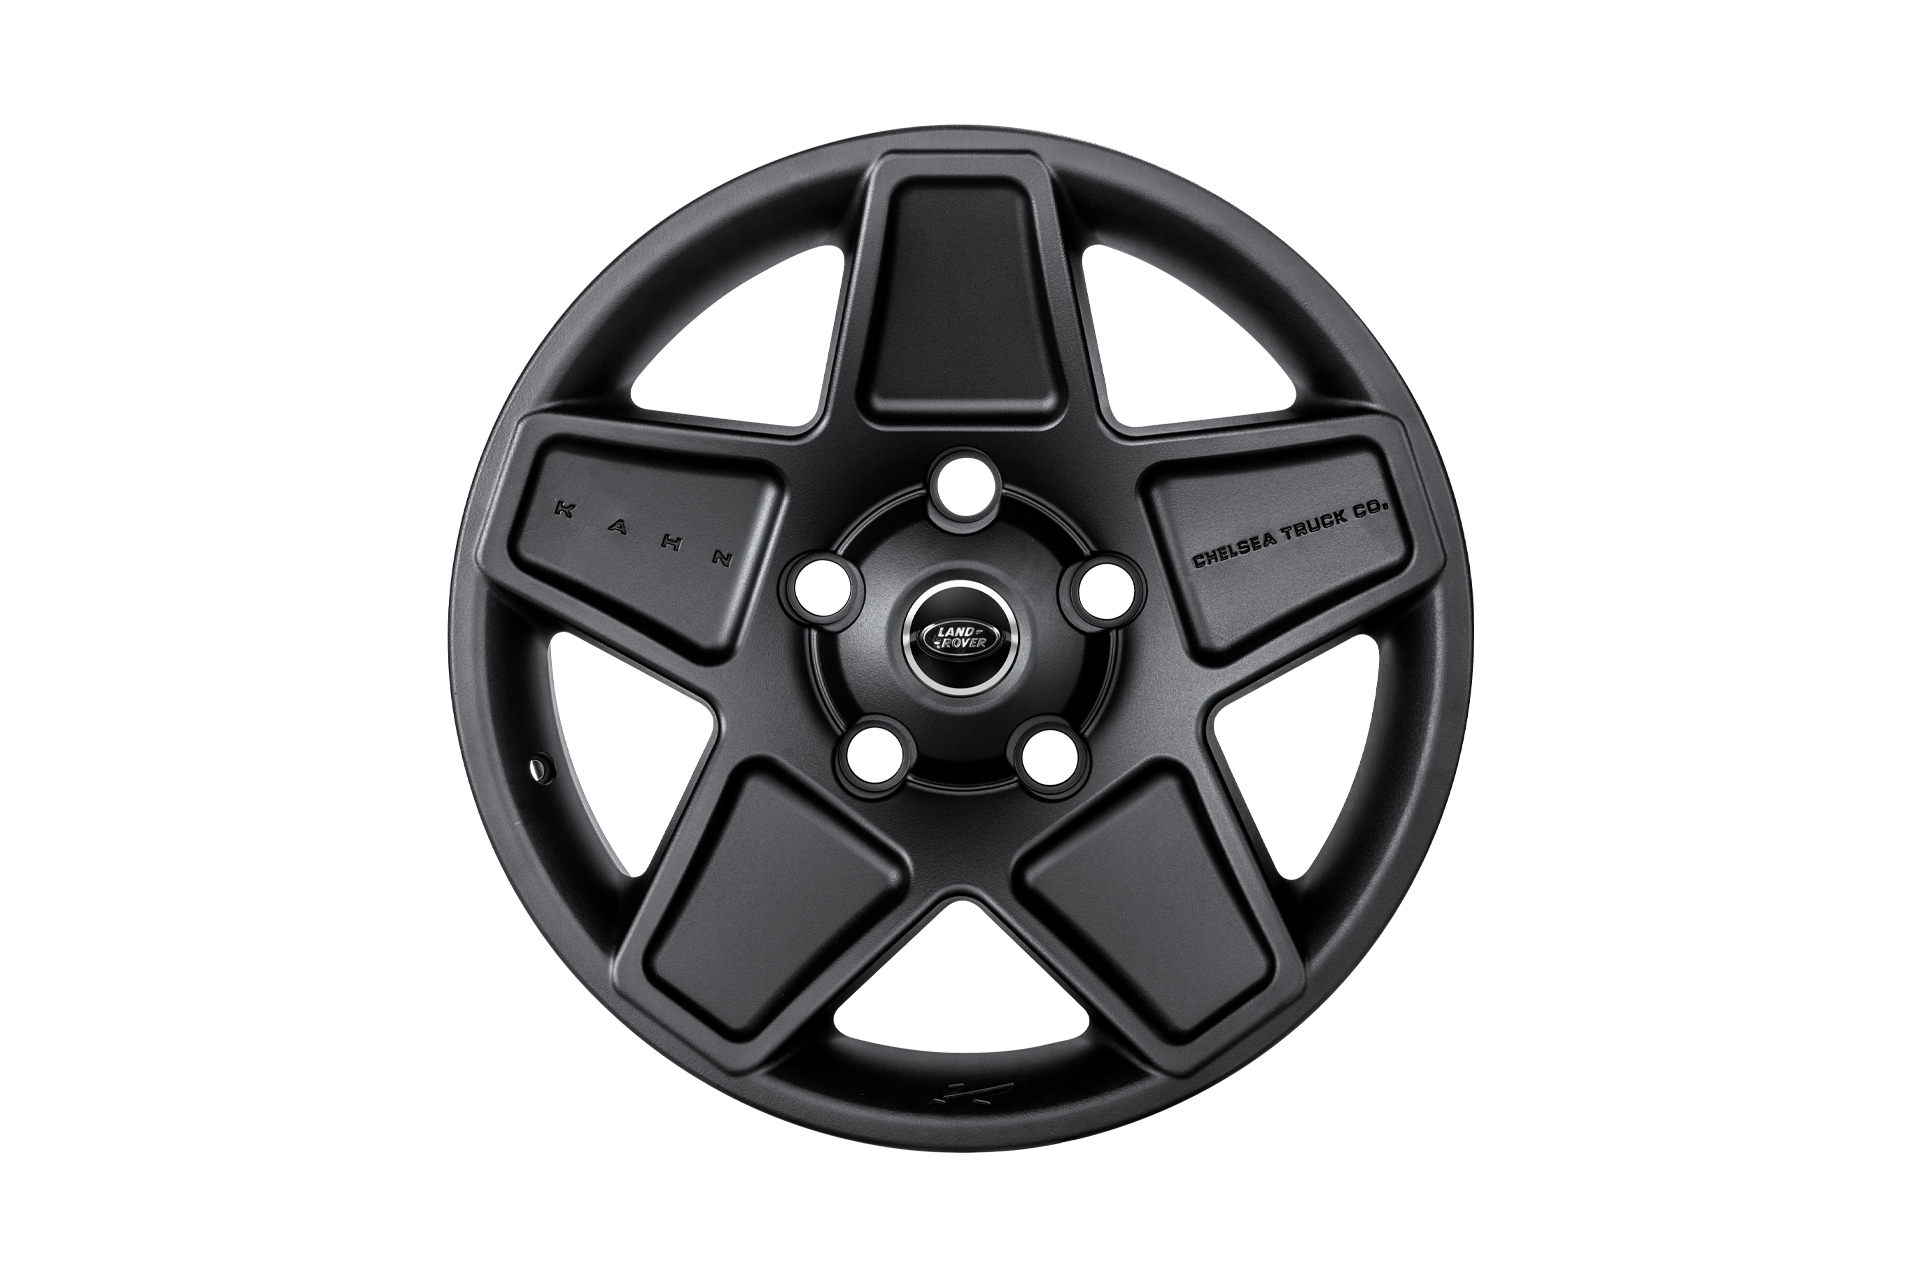 Land Rover Defender (1991-2016) Mondial Retro Light Alloy Wheels Image 4666